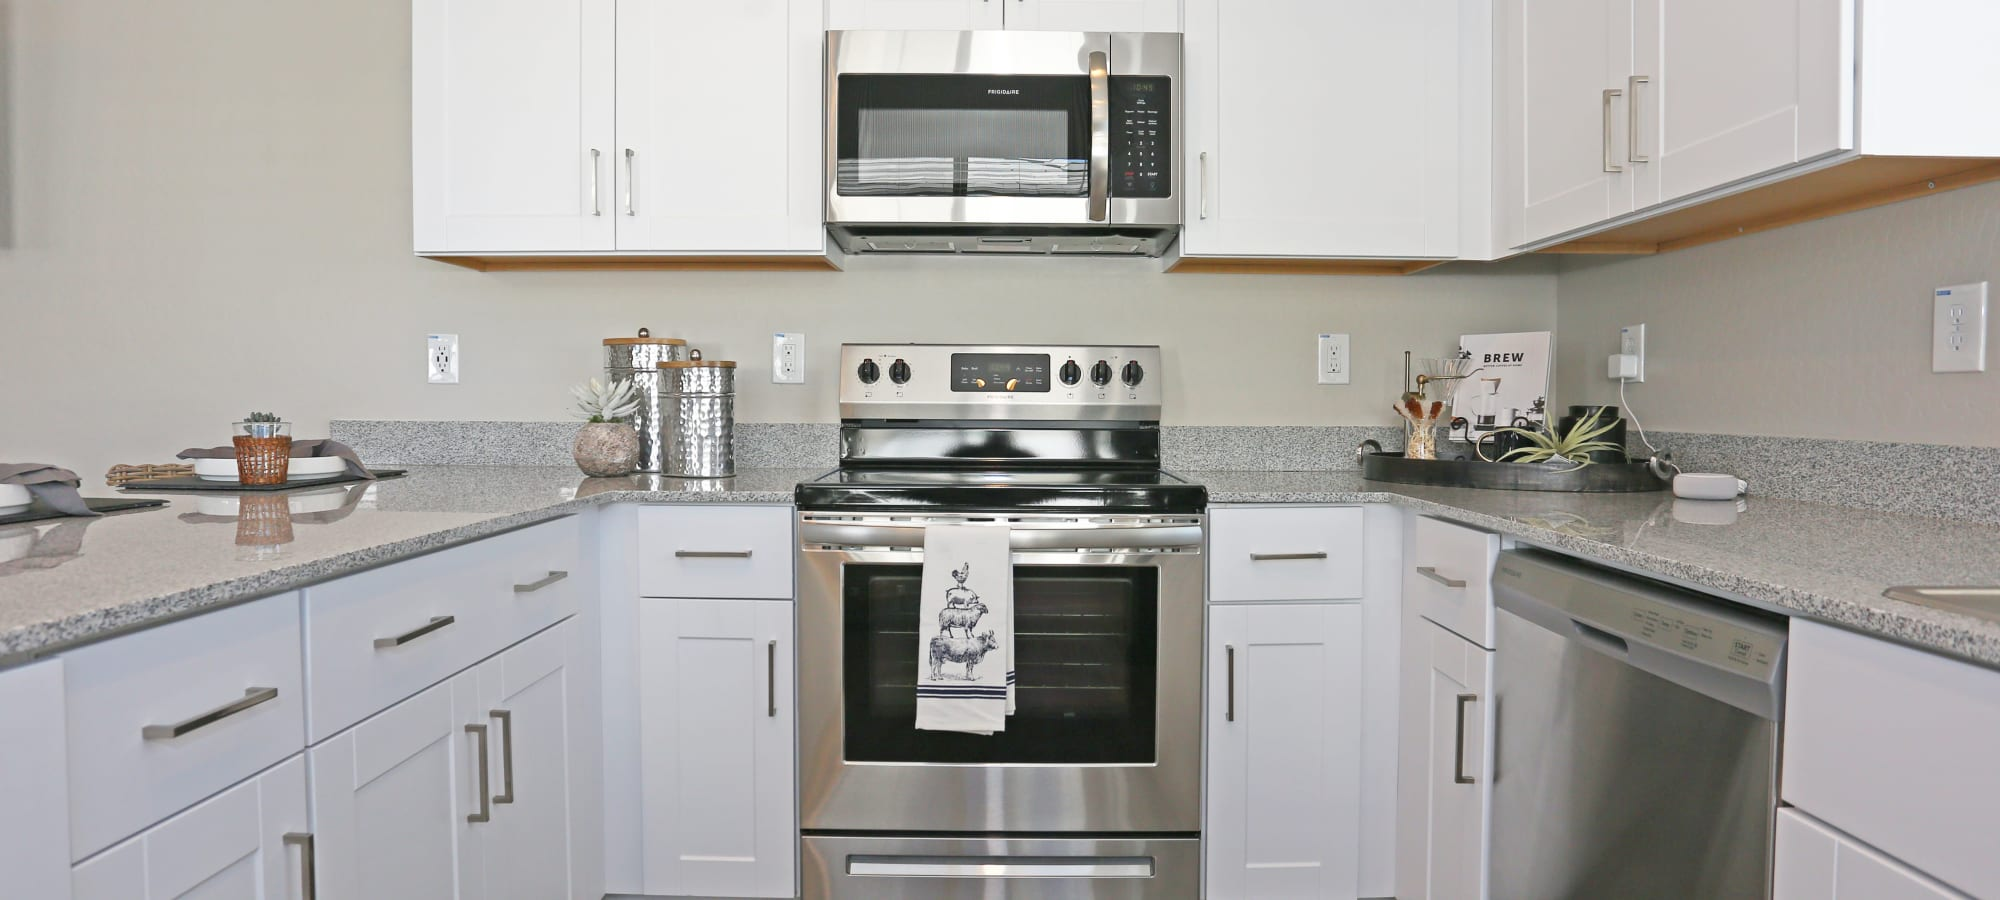 Stainless-steel appliances in model home's kitchen at Christopher Todd Communities On Mountain View in Surprise, Arizona